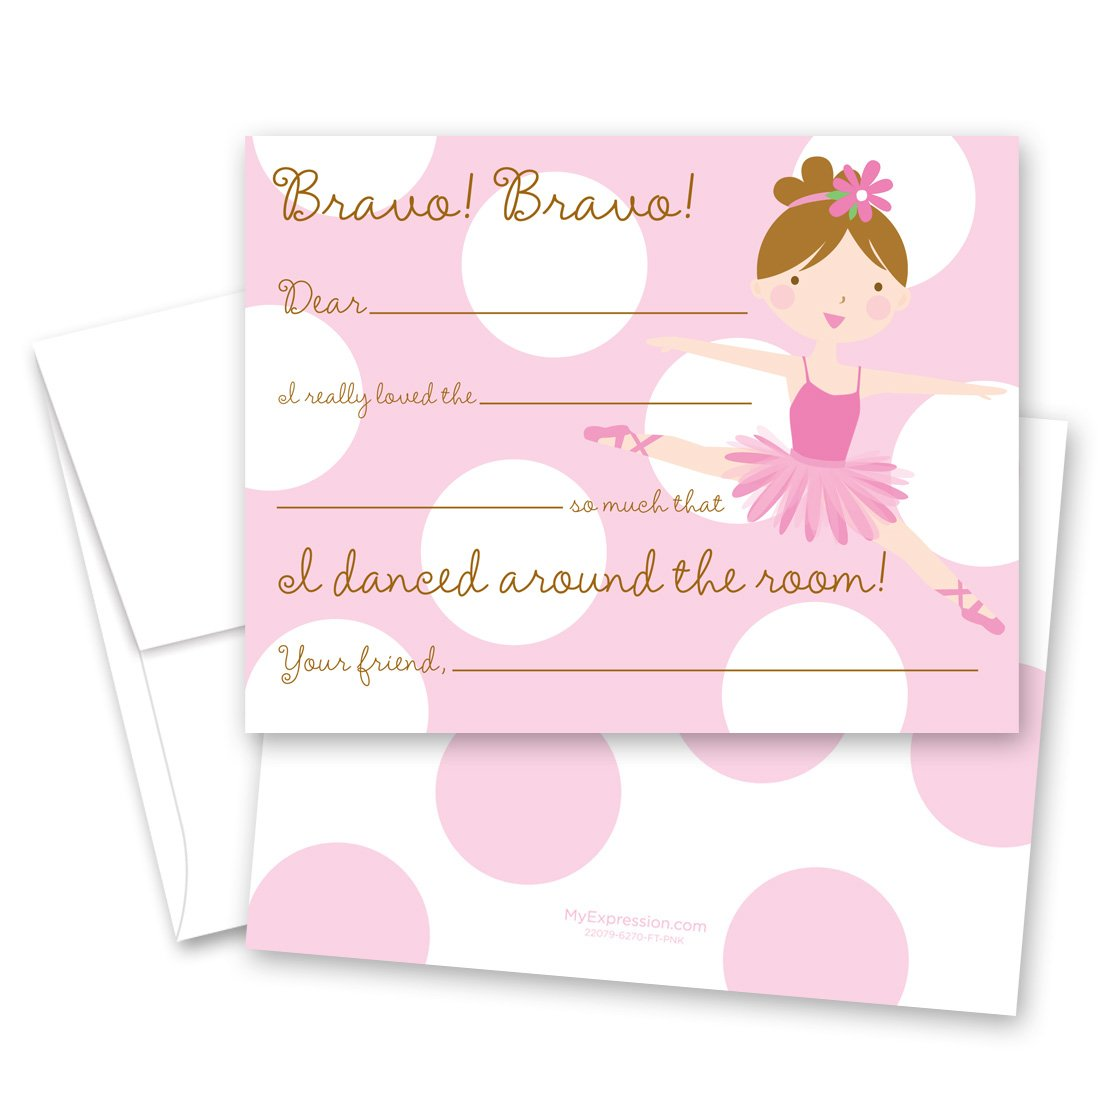 MyExpression.com 20 Let's Dance Pretty Girl Kids Fill-in Birthday Thank You Cards